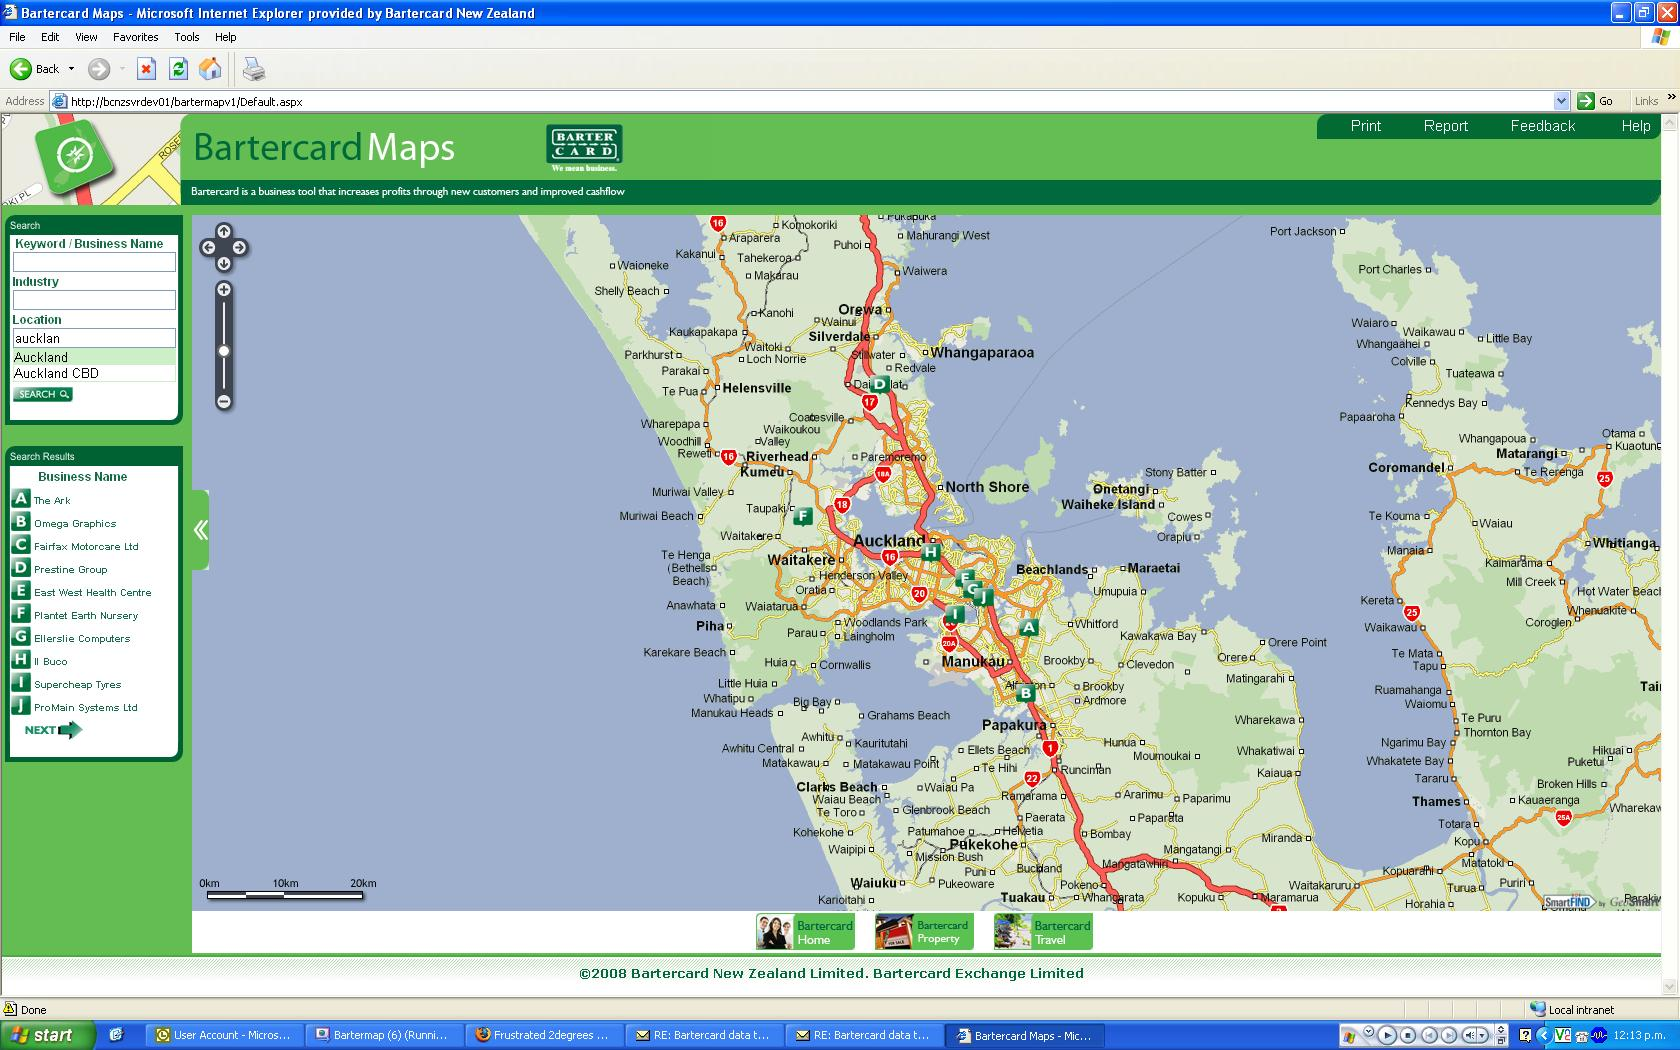 Bartercard Maps « GeoSmart Weblog on show map of zambia, show map of macedonia, show map of grand cayman, show map of district of columbia, show map of pakistan, show map of east africa, show map of burundi, show map of yemen, show map of oceans, show map of central asia, show map of windward islands, show map of south-east asia, show map of canadian provinces, show map of middle east countries, show map of fiji, show map of finland, show map of south vietnam, show map of south korea, show map of greenland, show map of caribbean sea,